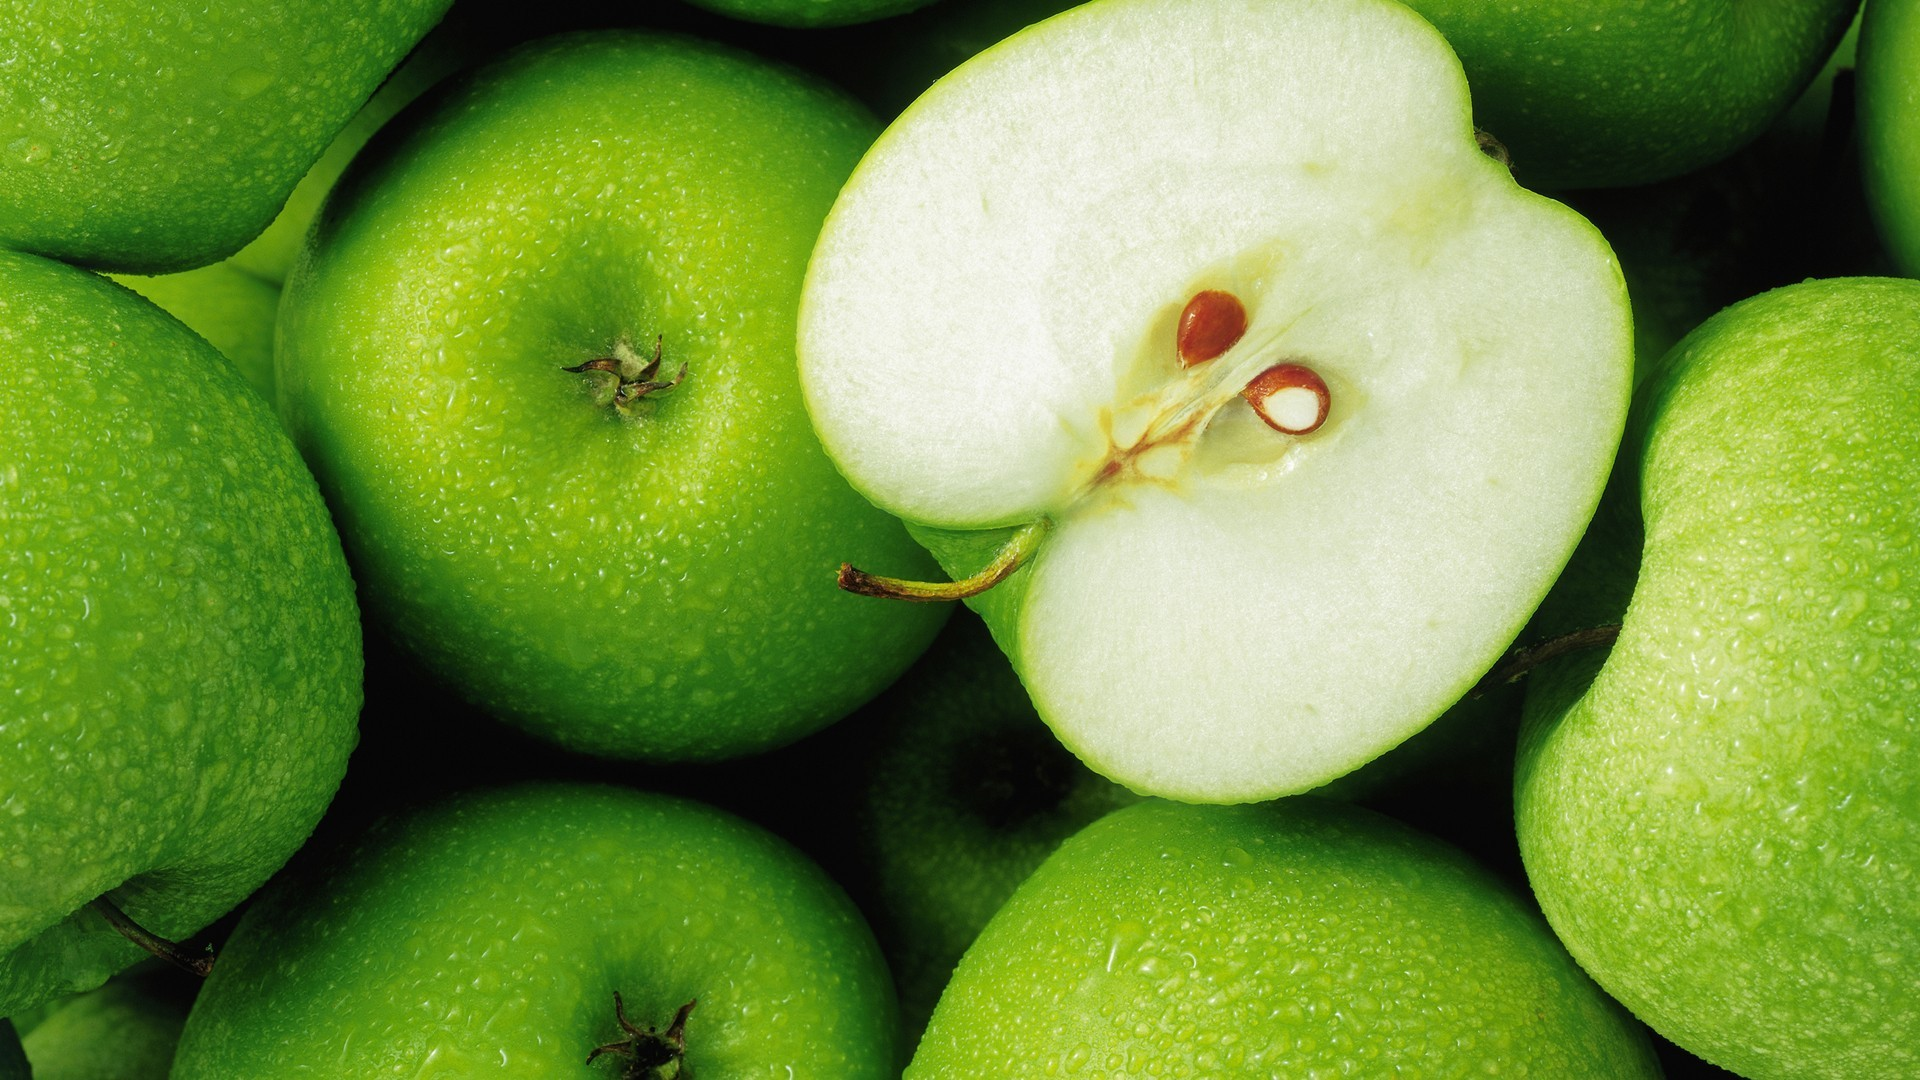 Res: 1920x1080, Green apples background wallpaper